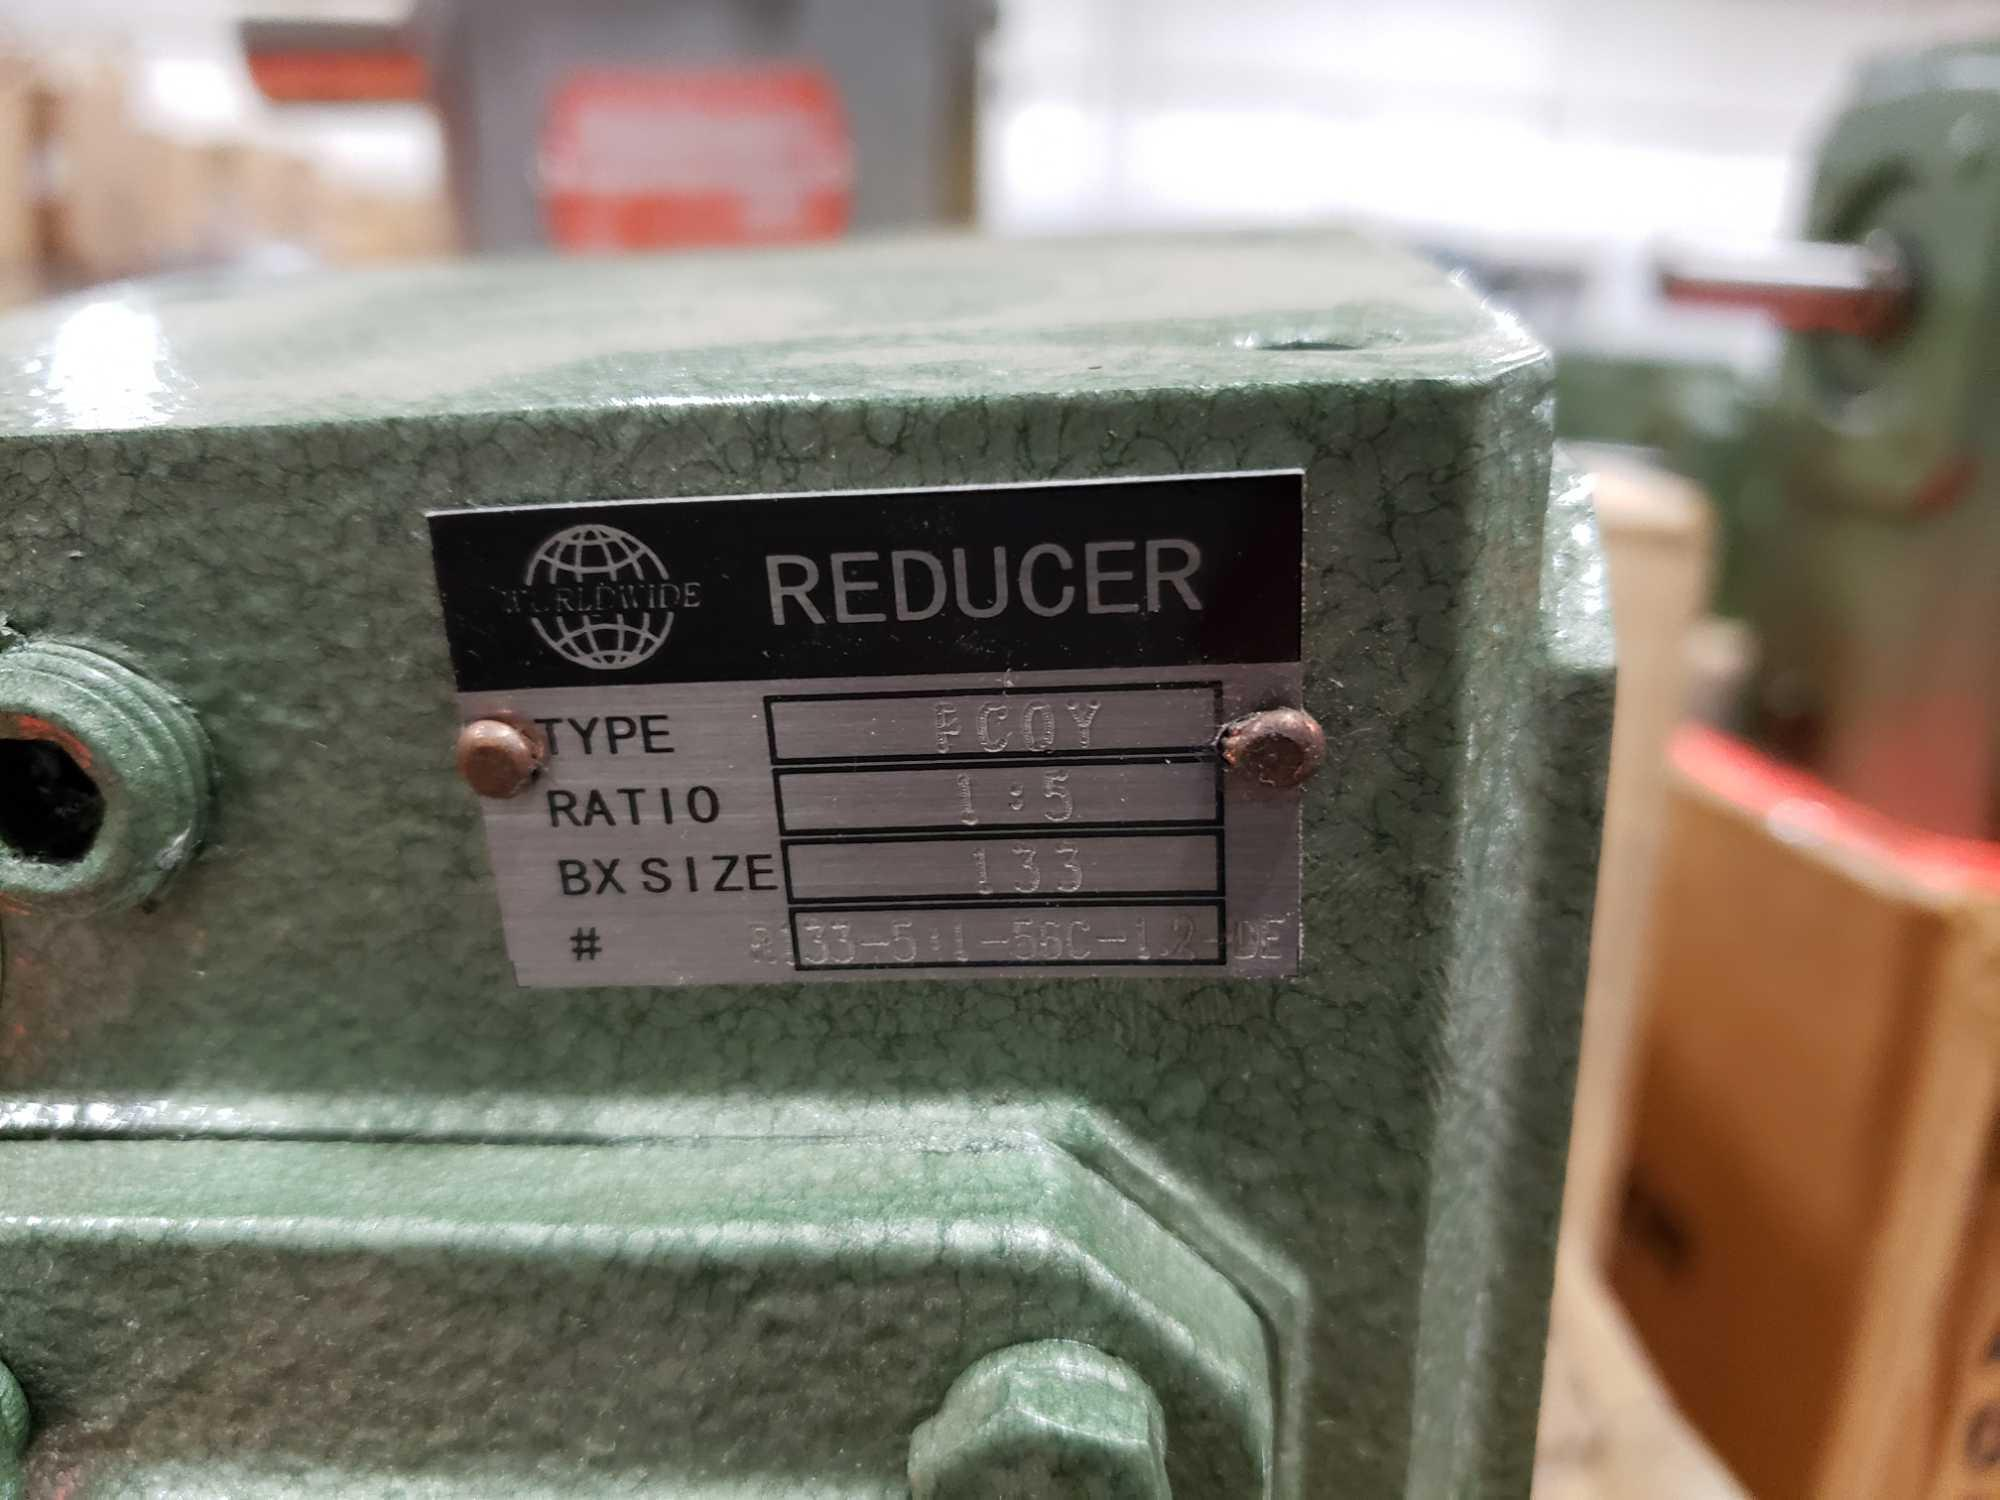 Lot 31 - Worldwide Electric Corp gear reducer type FCOY, 1:5 ratio, BX size 133. New in box.